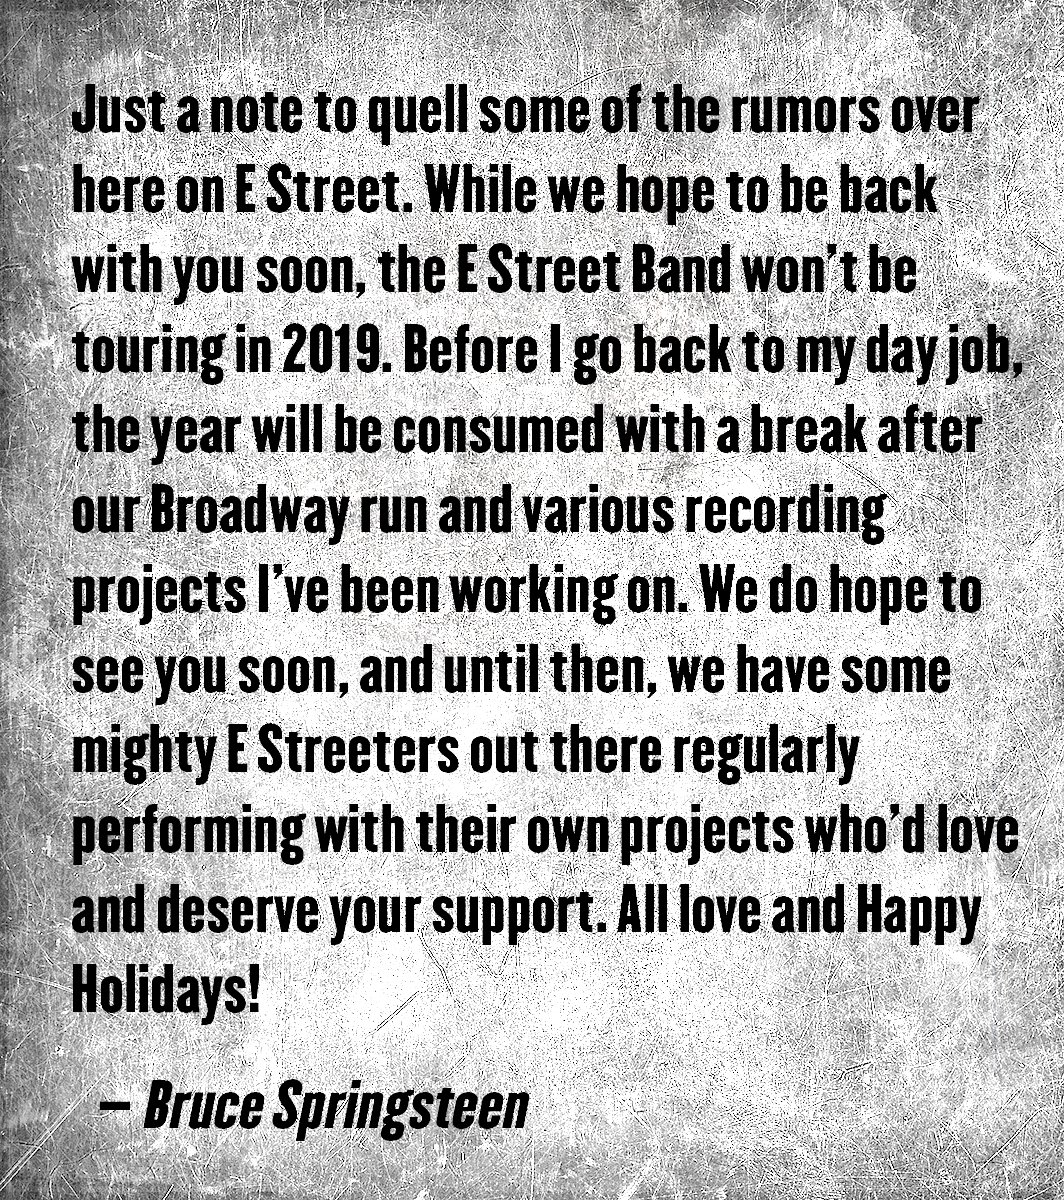 springsteen-2019-statement